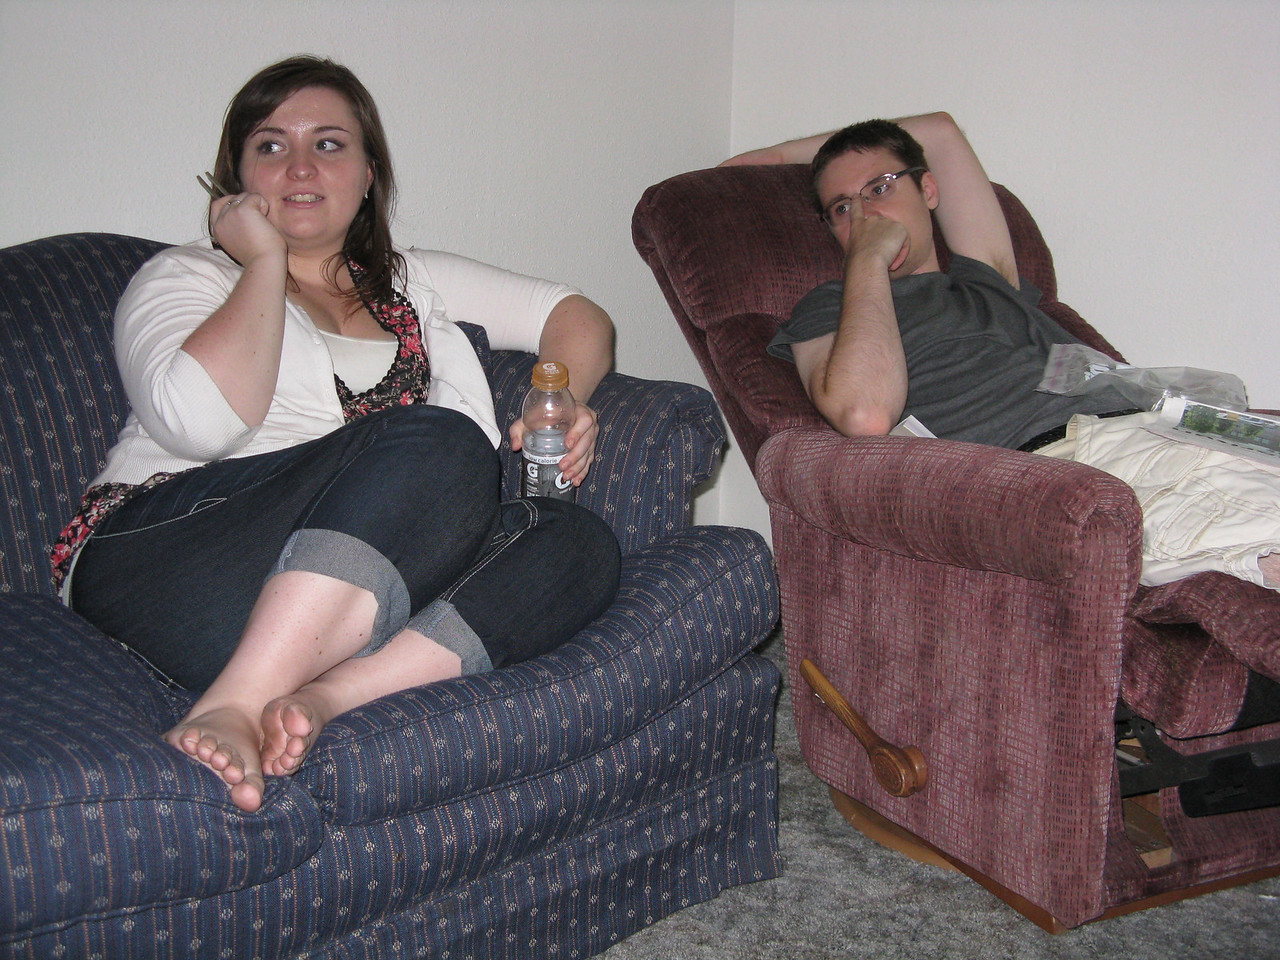 Becca and Kevin relaxing after a good job at furnishing Kevin's apartment.